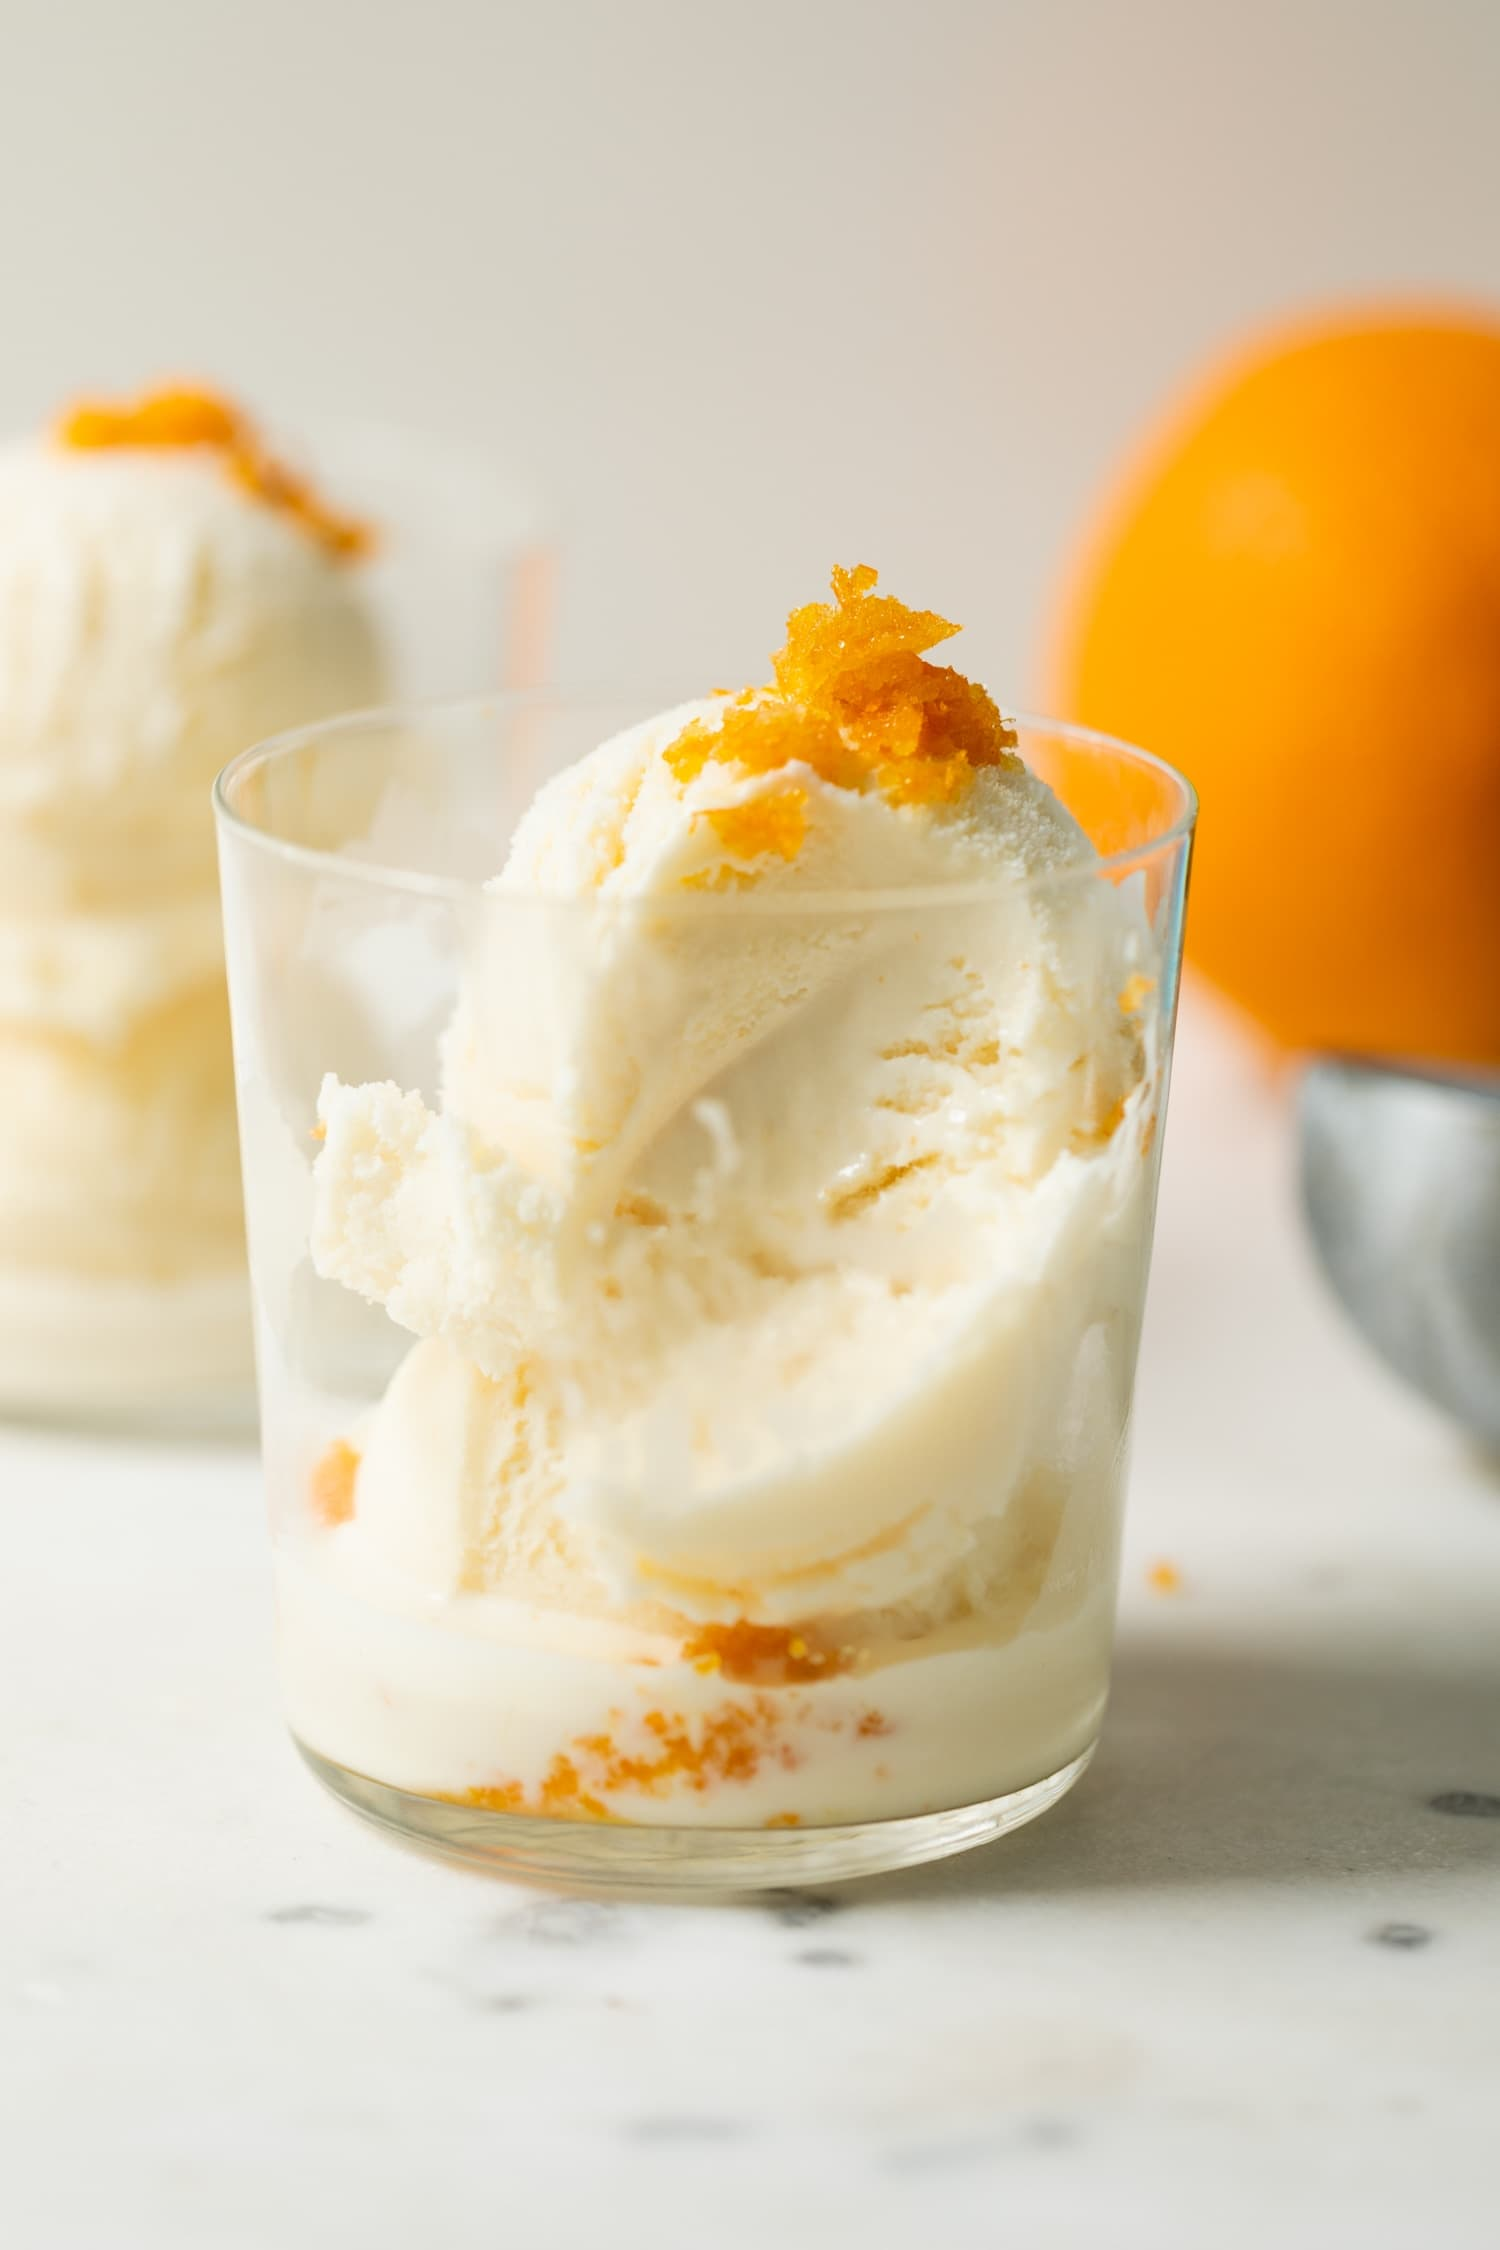 Mimosa ice cream speckled with orange zest pieces with a bite missing in a clear glass on marble surface with second ice cream glass and orange in background